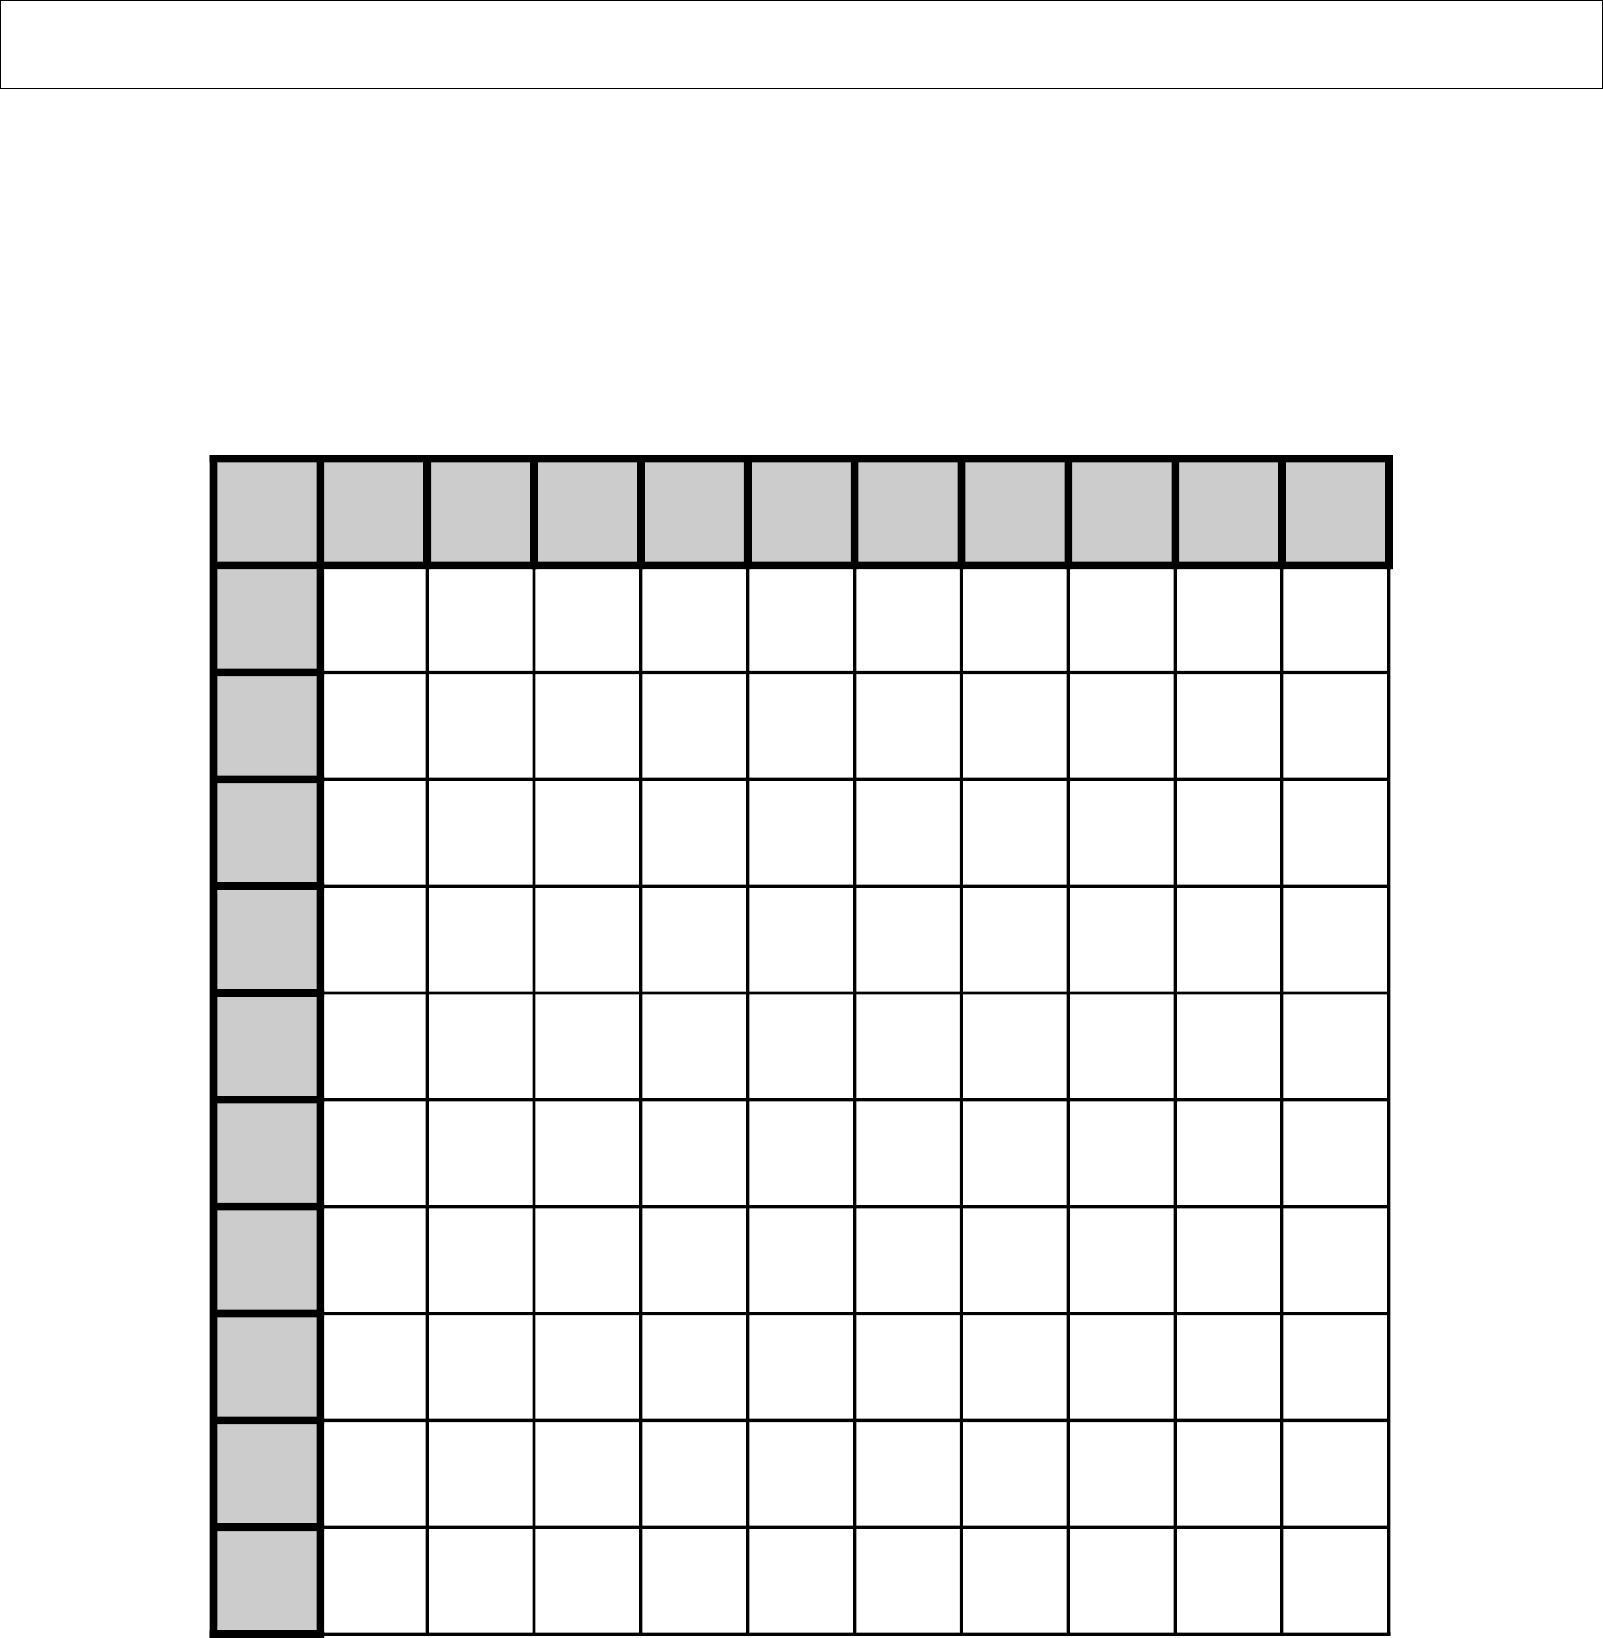 Worksheet Multiplication Table Worksheet Blank Grass Fedjp Worksheet Study Site